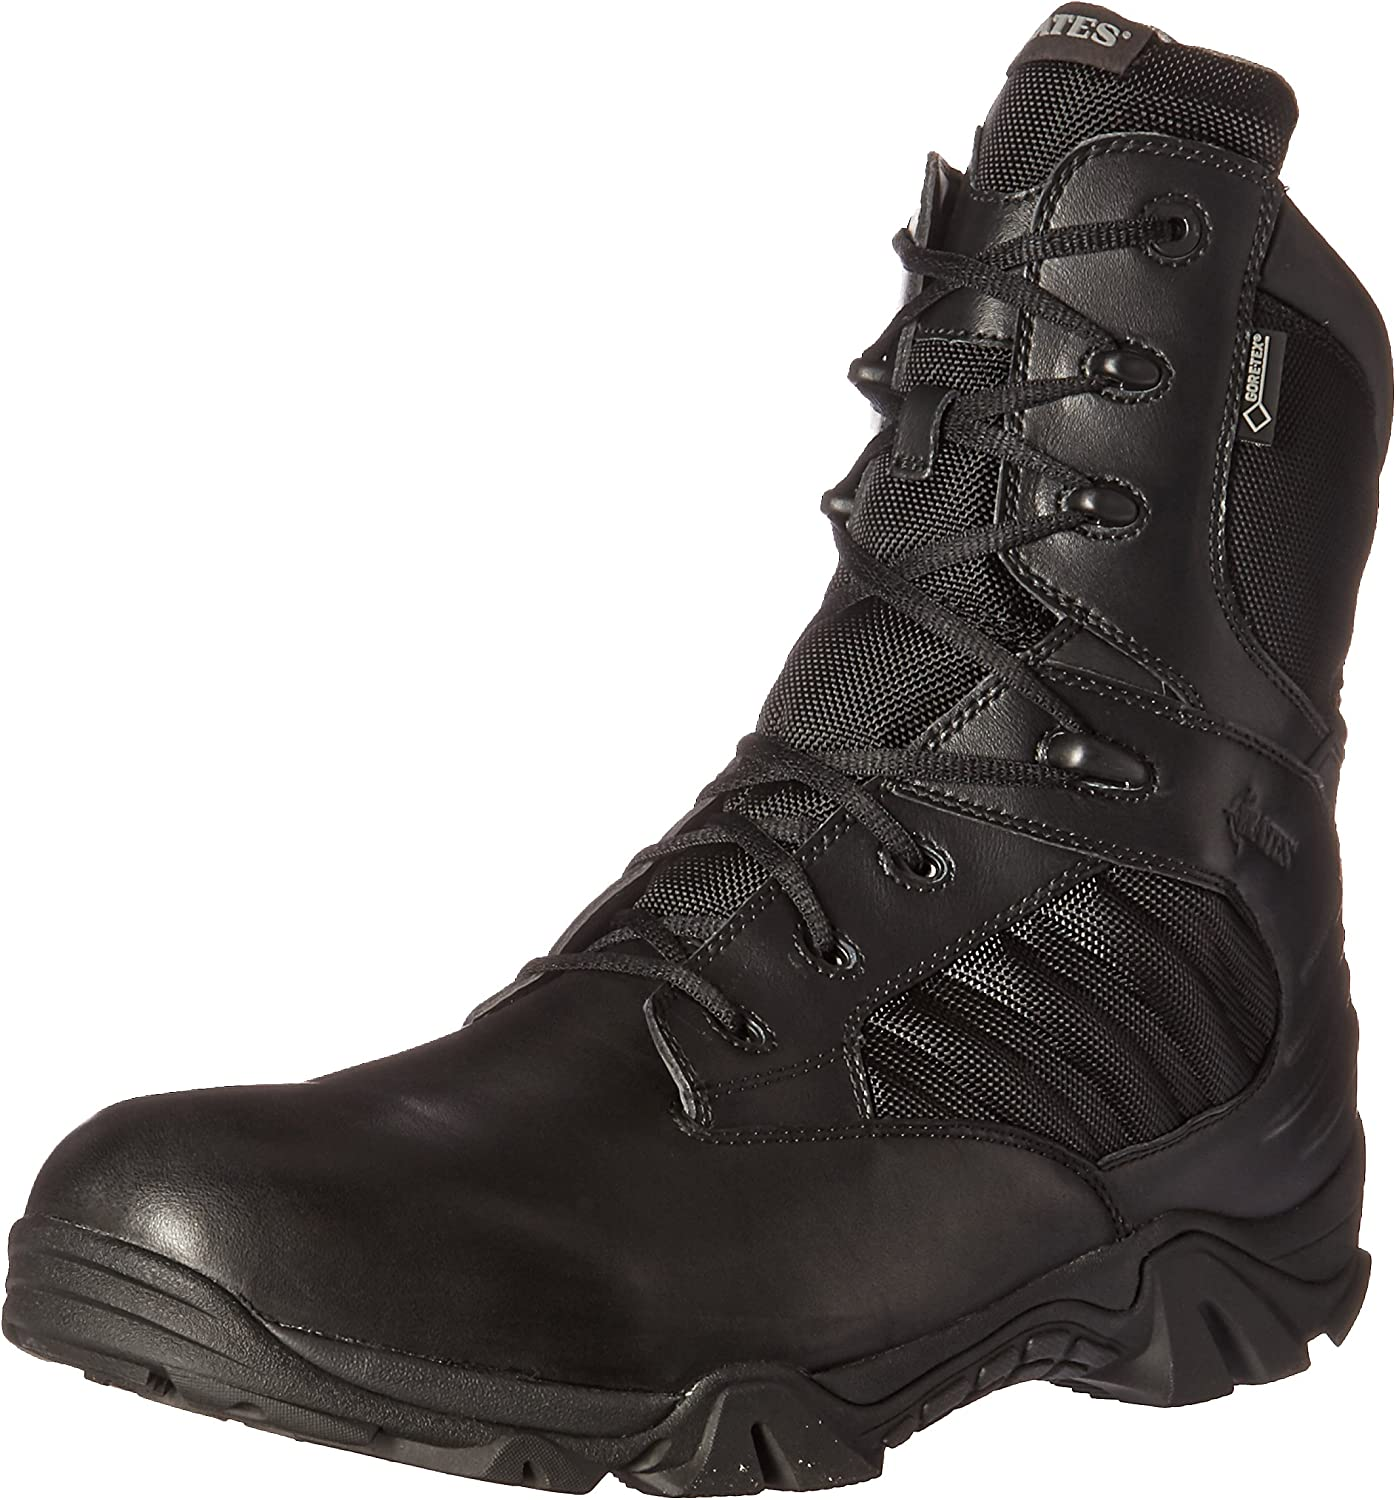 Bates Men's Be super 5% OFF welcome Gx-8 Gore-tex Boot Waterproof Insulated